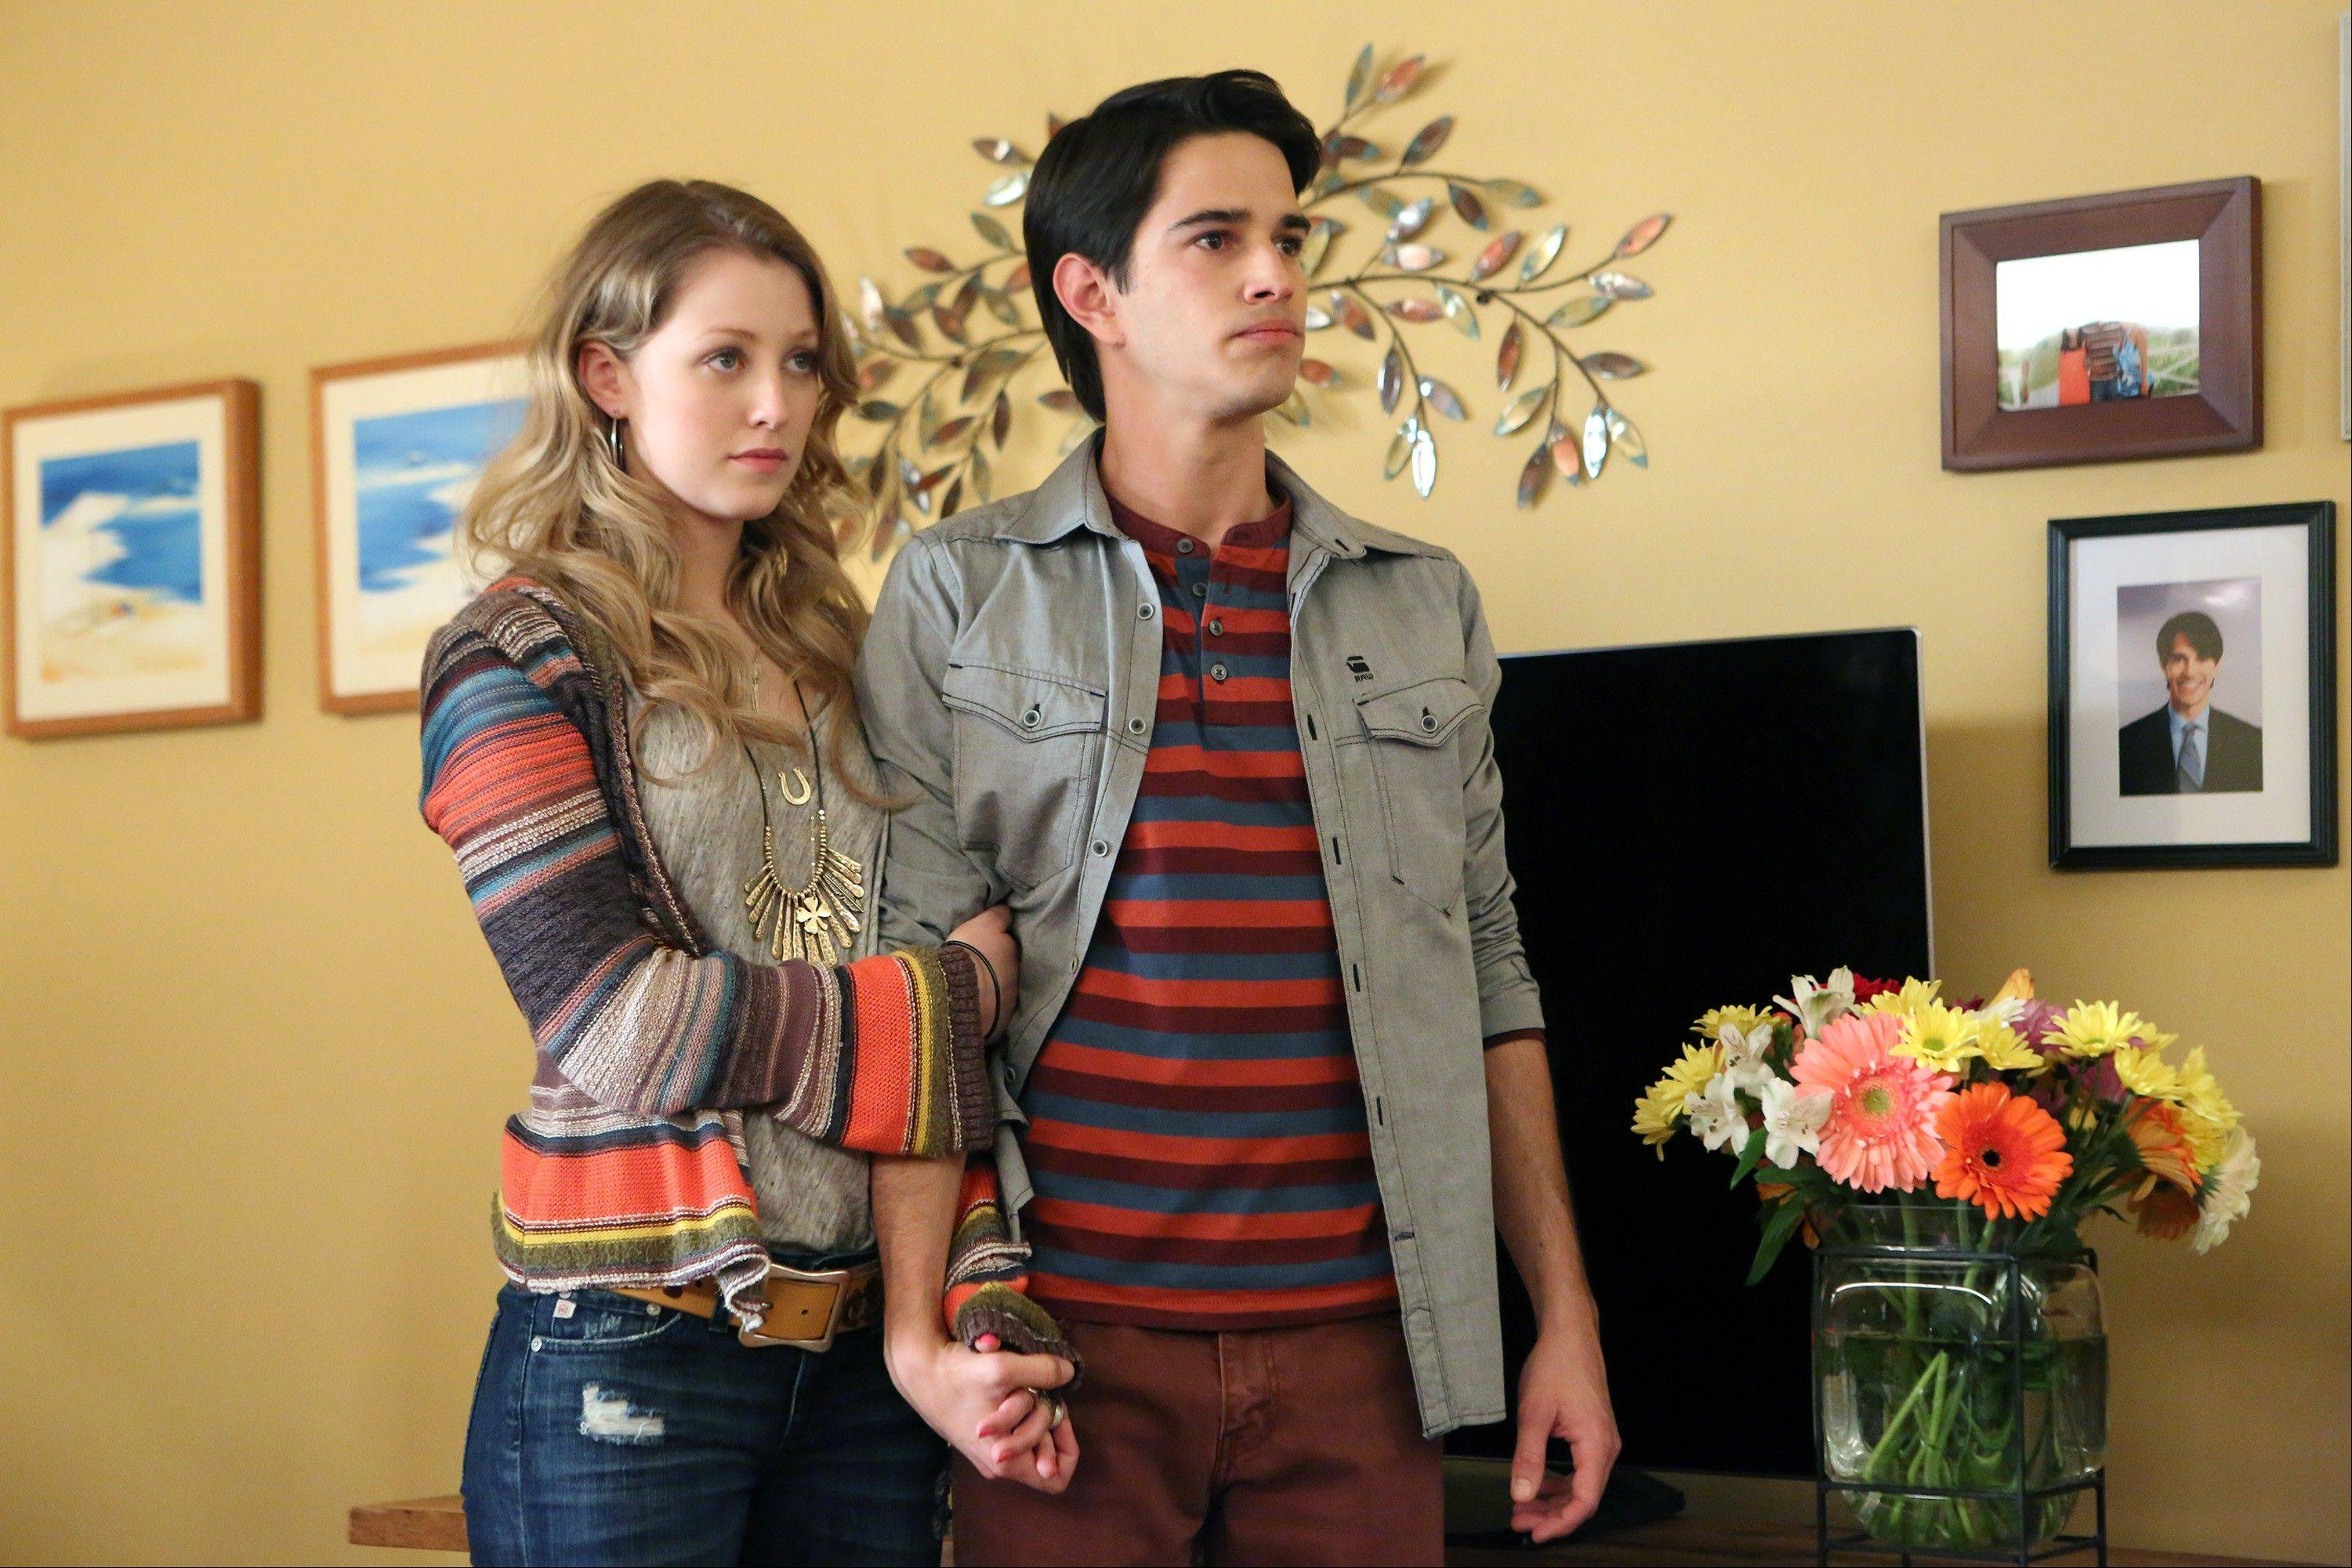 Ella Rae Peck, left, plays Molly Yoder and Joey Haro is Junior Hernandez in �Welcome to the Family,� premiering Oct. 3 on NBC.